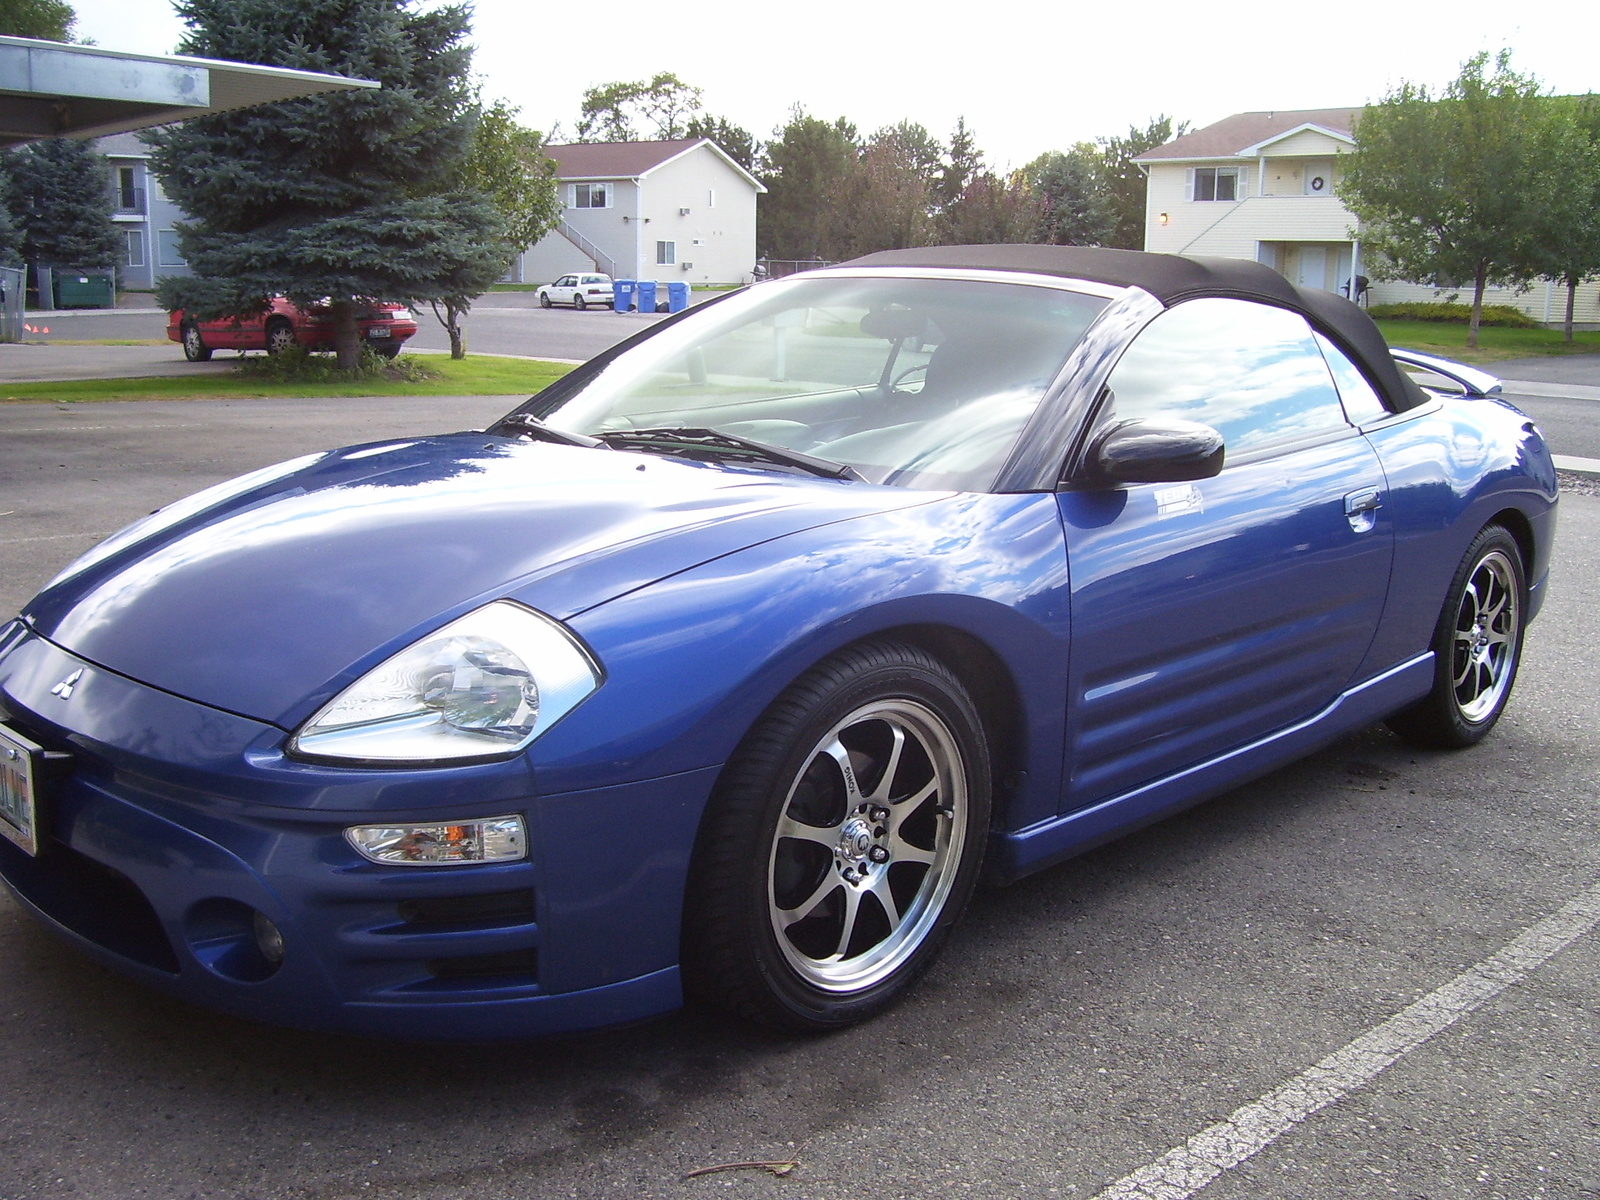 new w 05 eclipse gts spyder club3g forum mitsubishi eclipse 3g forums. Black Bedroom Furniture Sets. Home Design Ideas